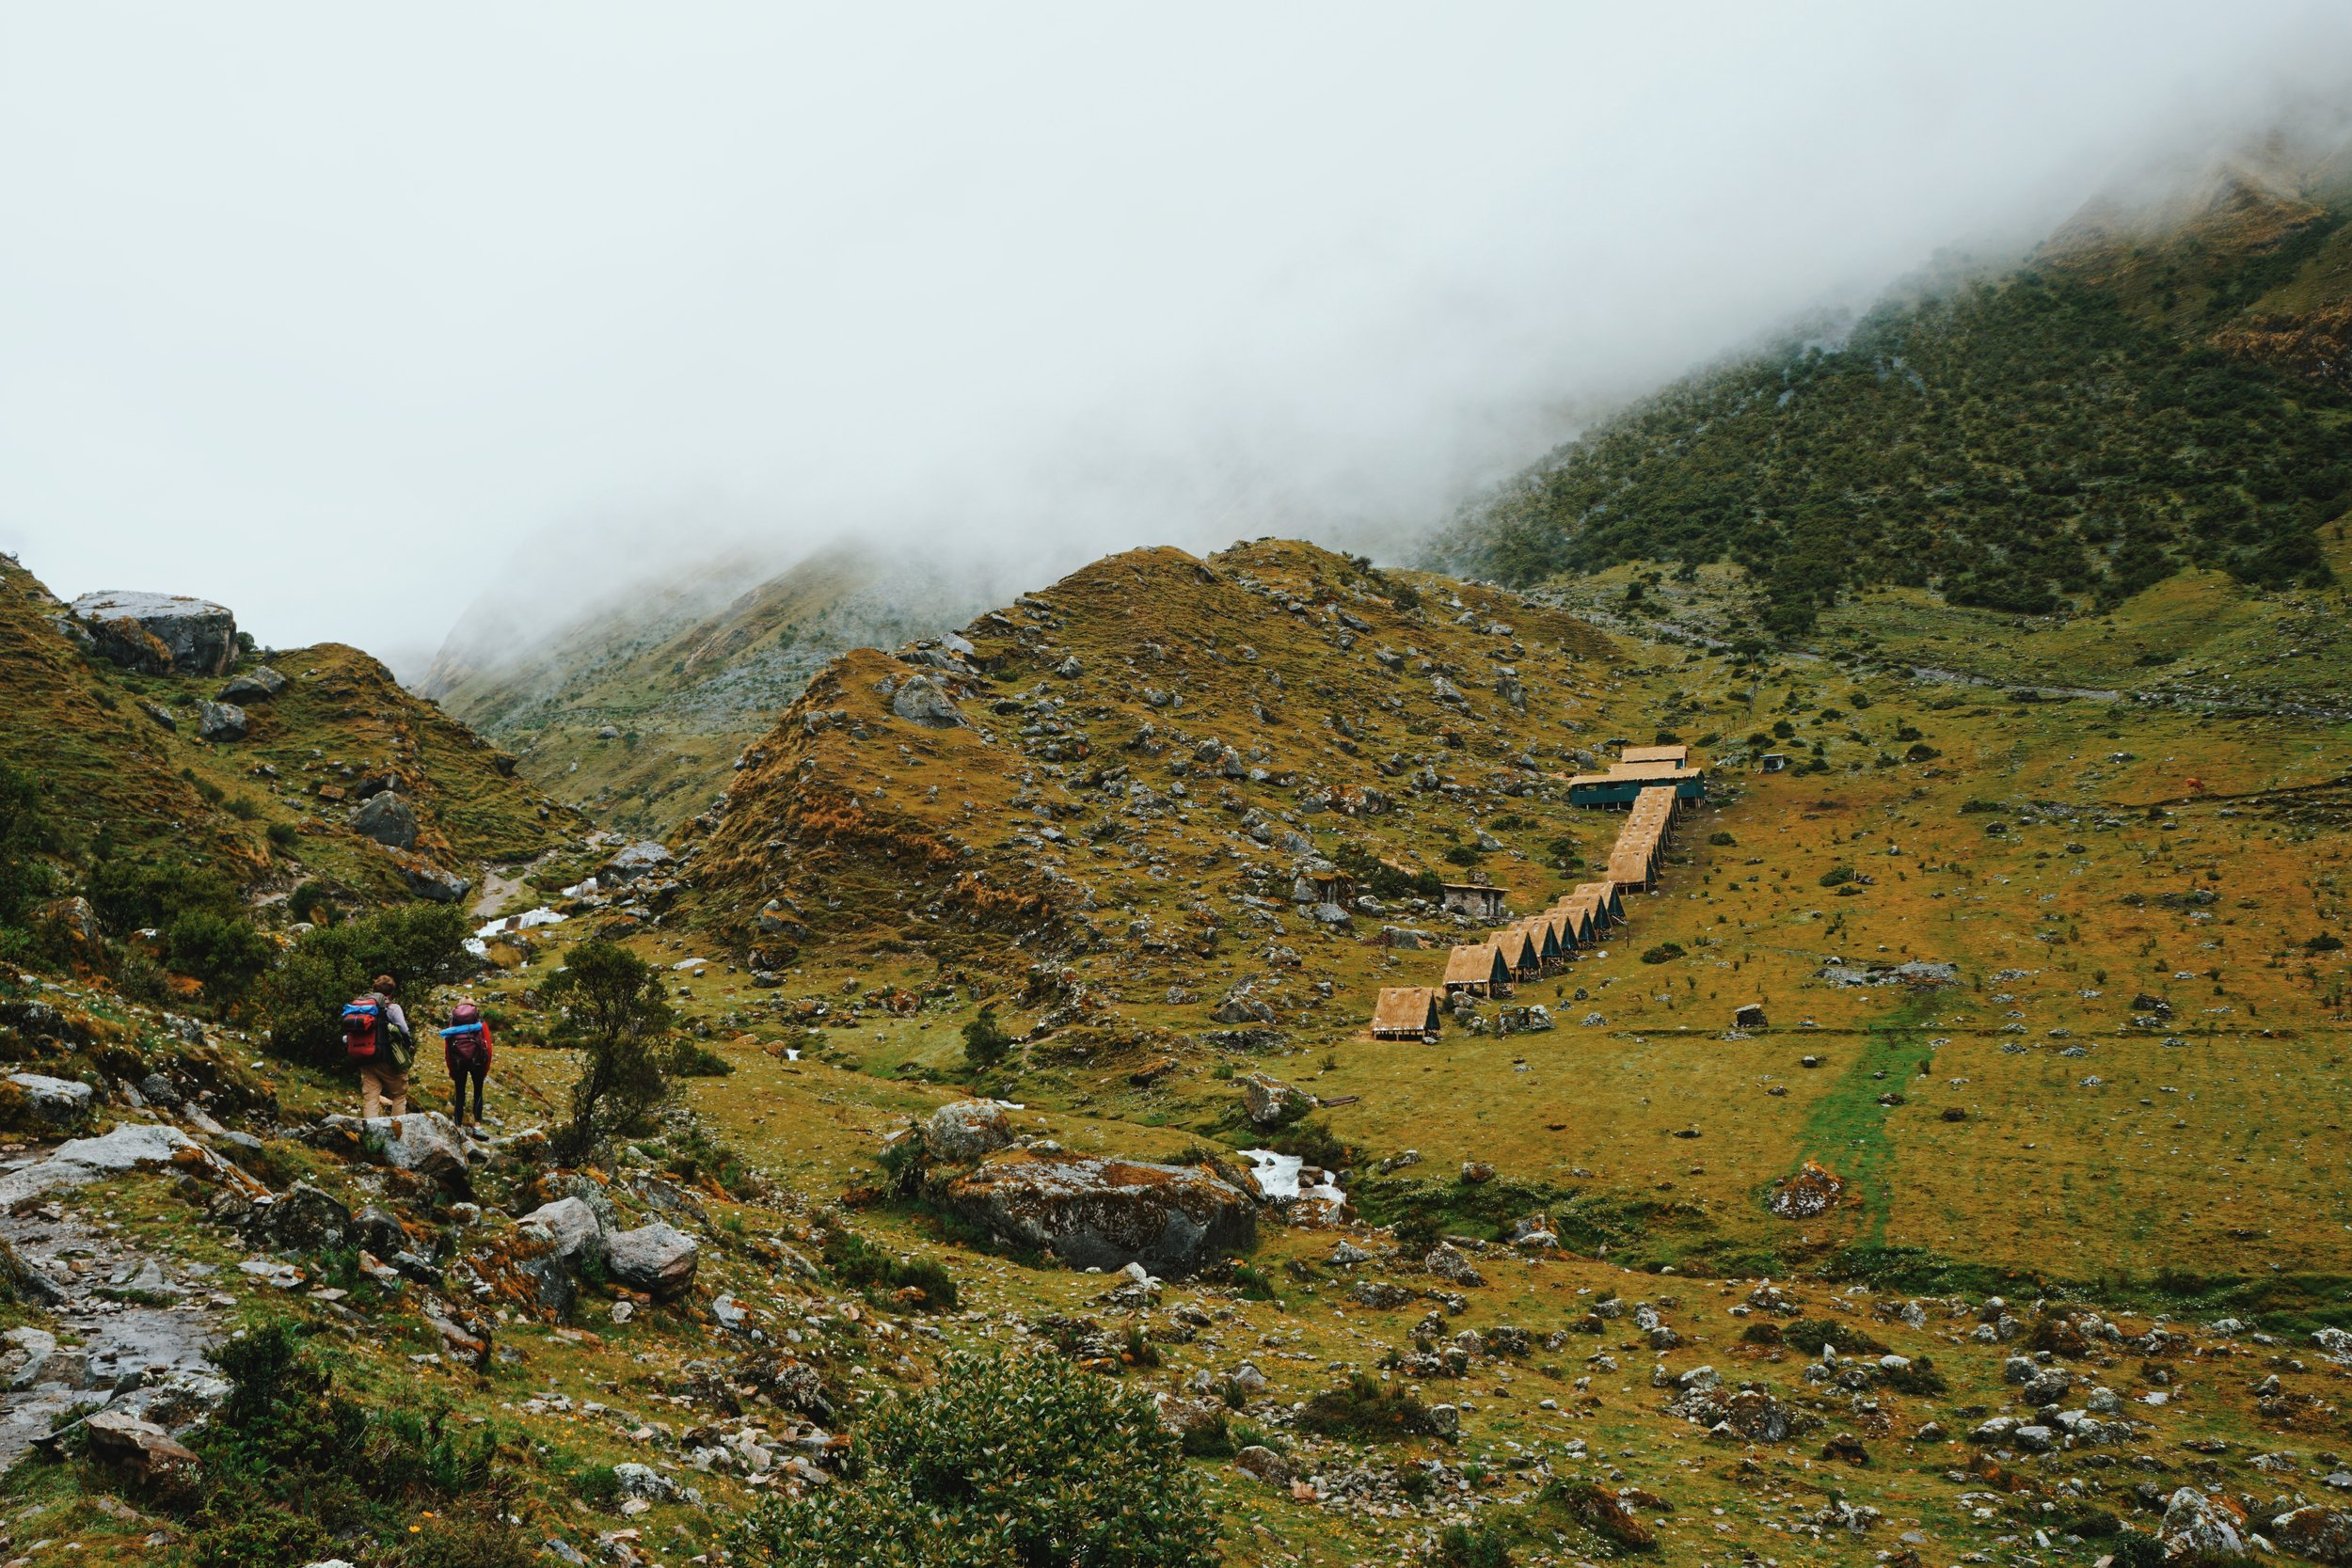 Day 1: Hiking up to the Salkantay Pass. Even though there are clouds hiding the mountains, it made for stunning scenery.